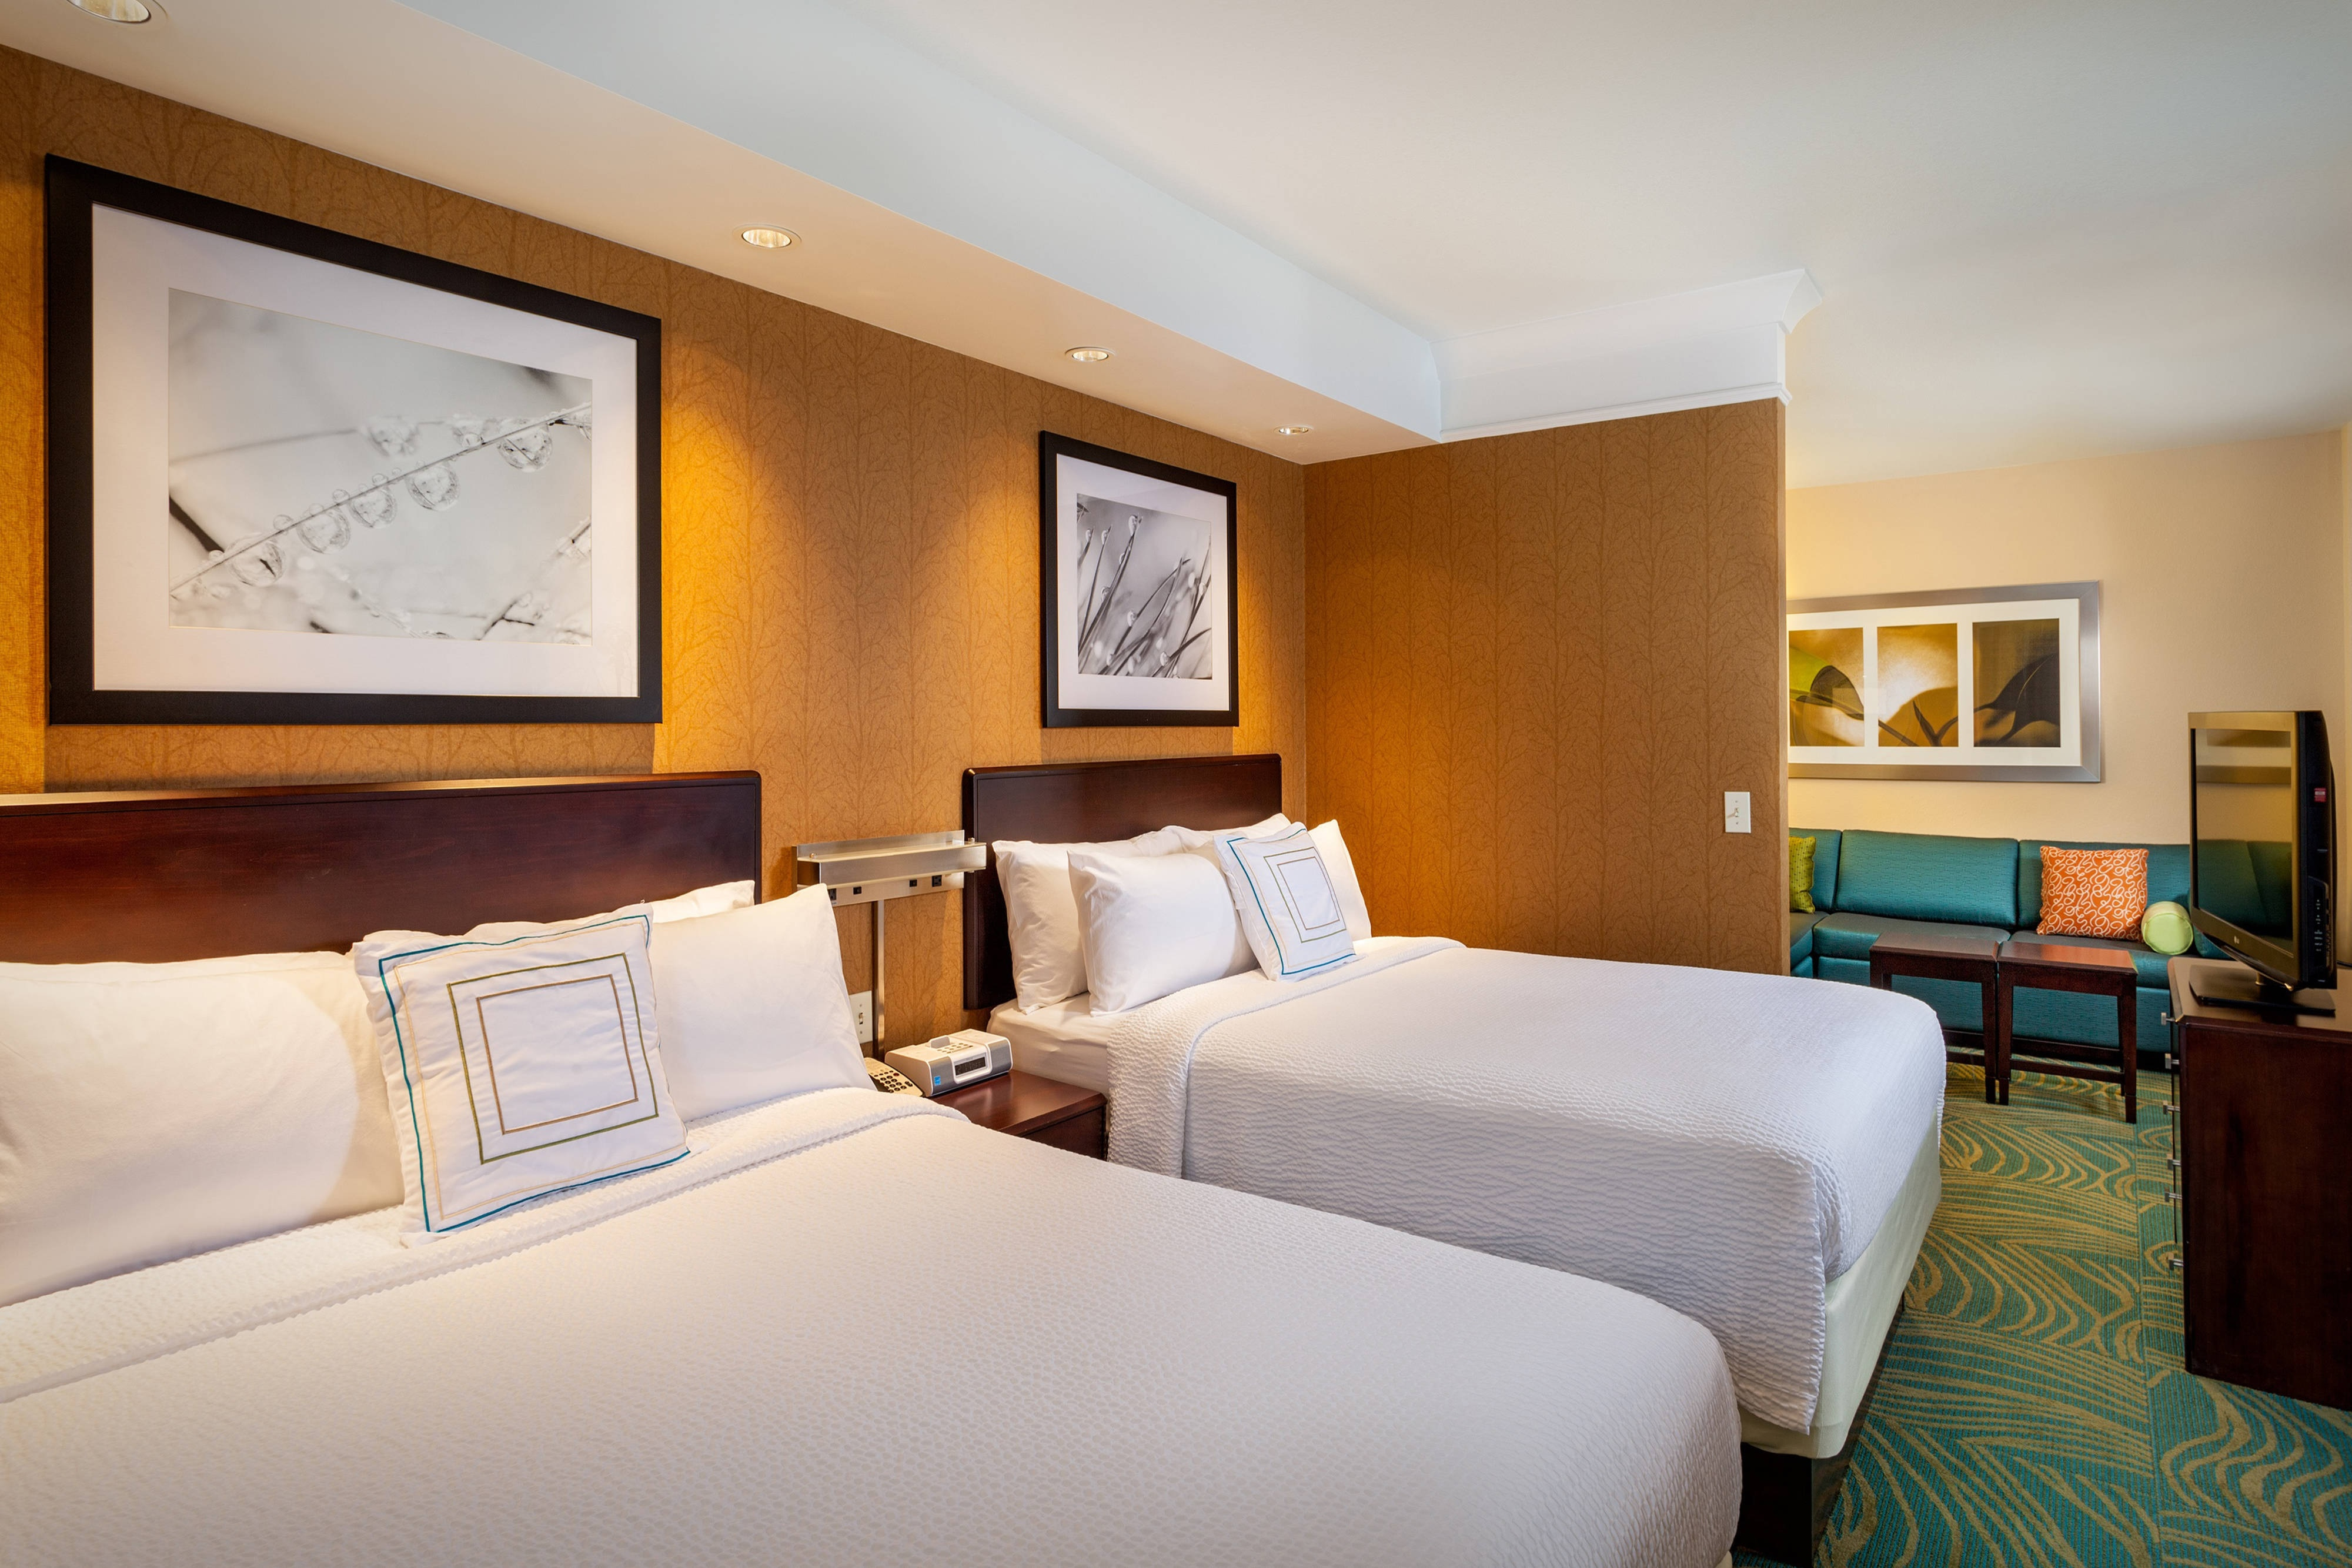 SpringHill Suites Modesto Guest Rooms